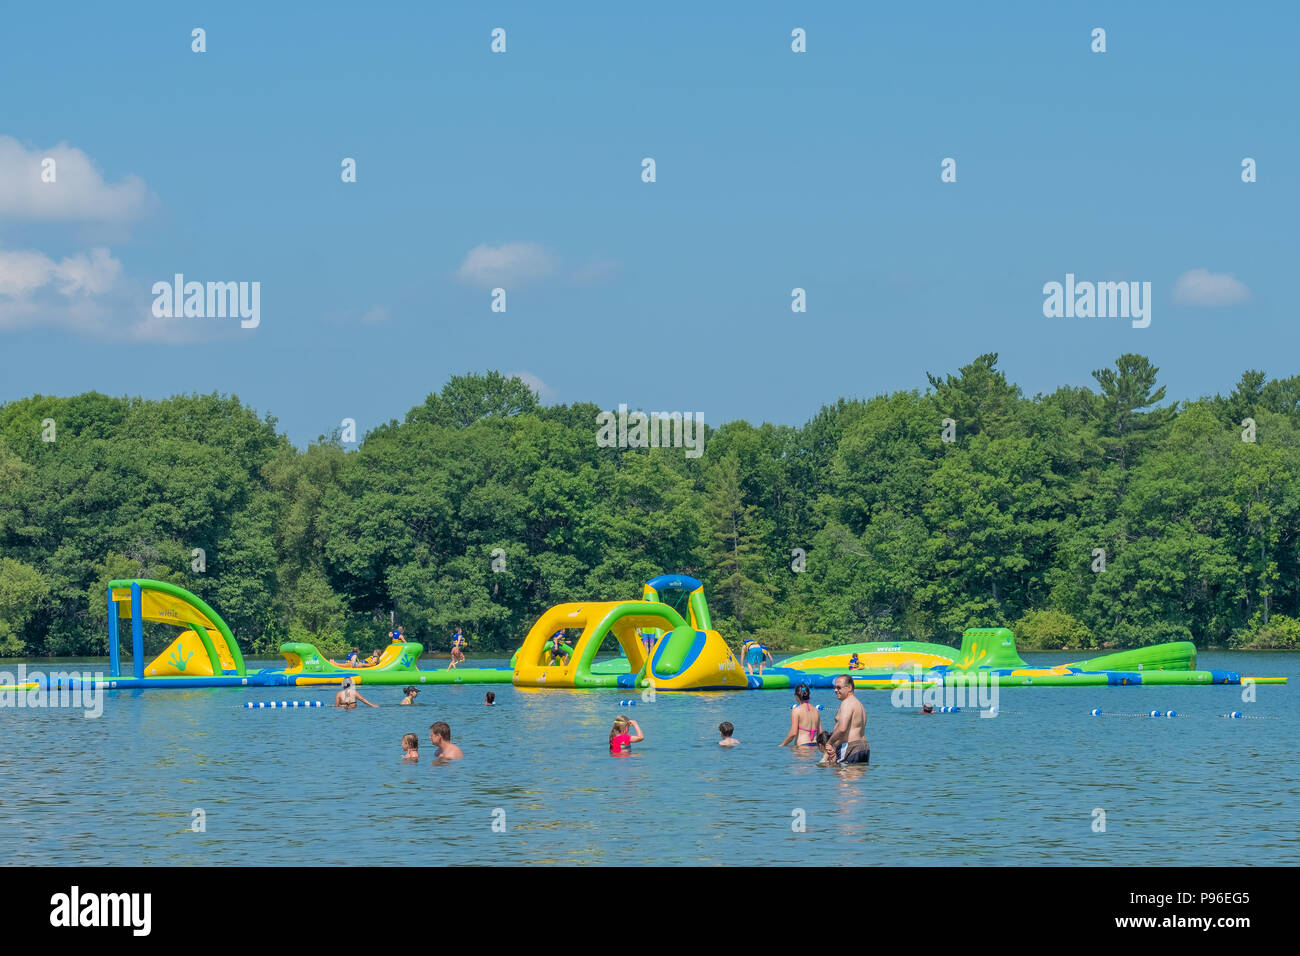 Families enjoy a cooling swim in Lake Couchiching during an extended heatwave in Orillia Ontario Canada. - Stock Image